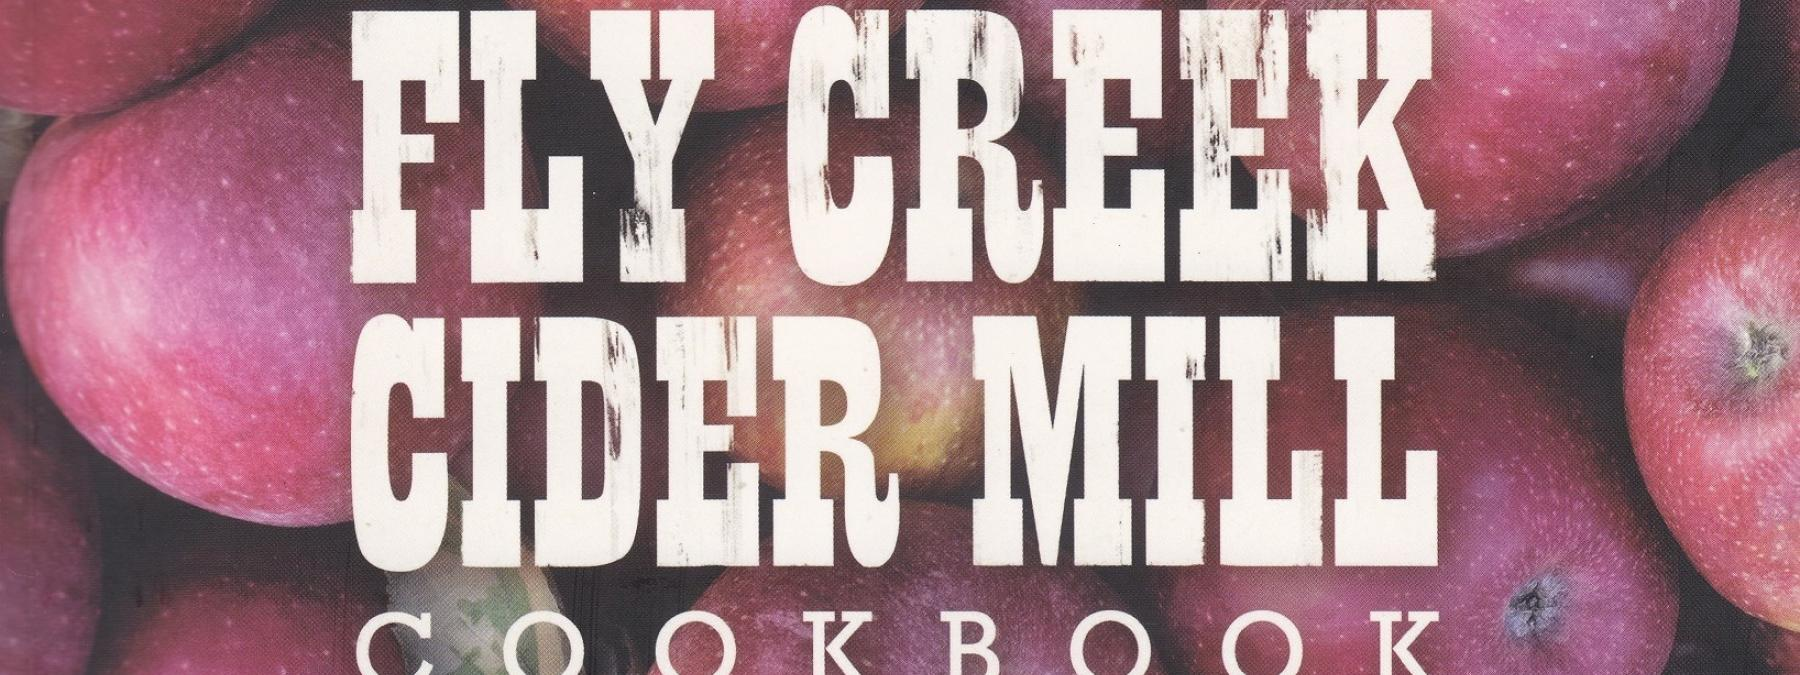 Fly Creek Cider Mill Cookbook